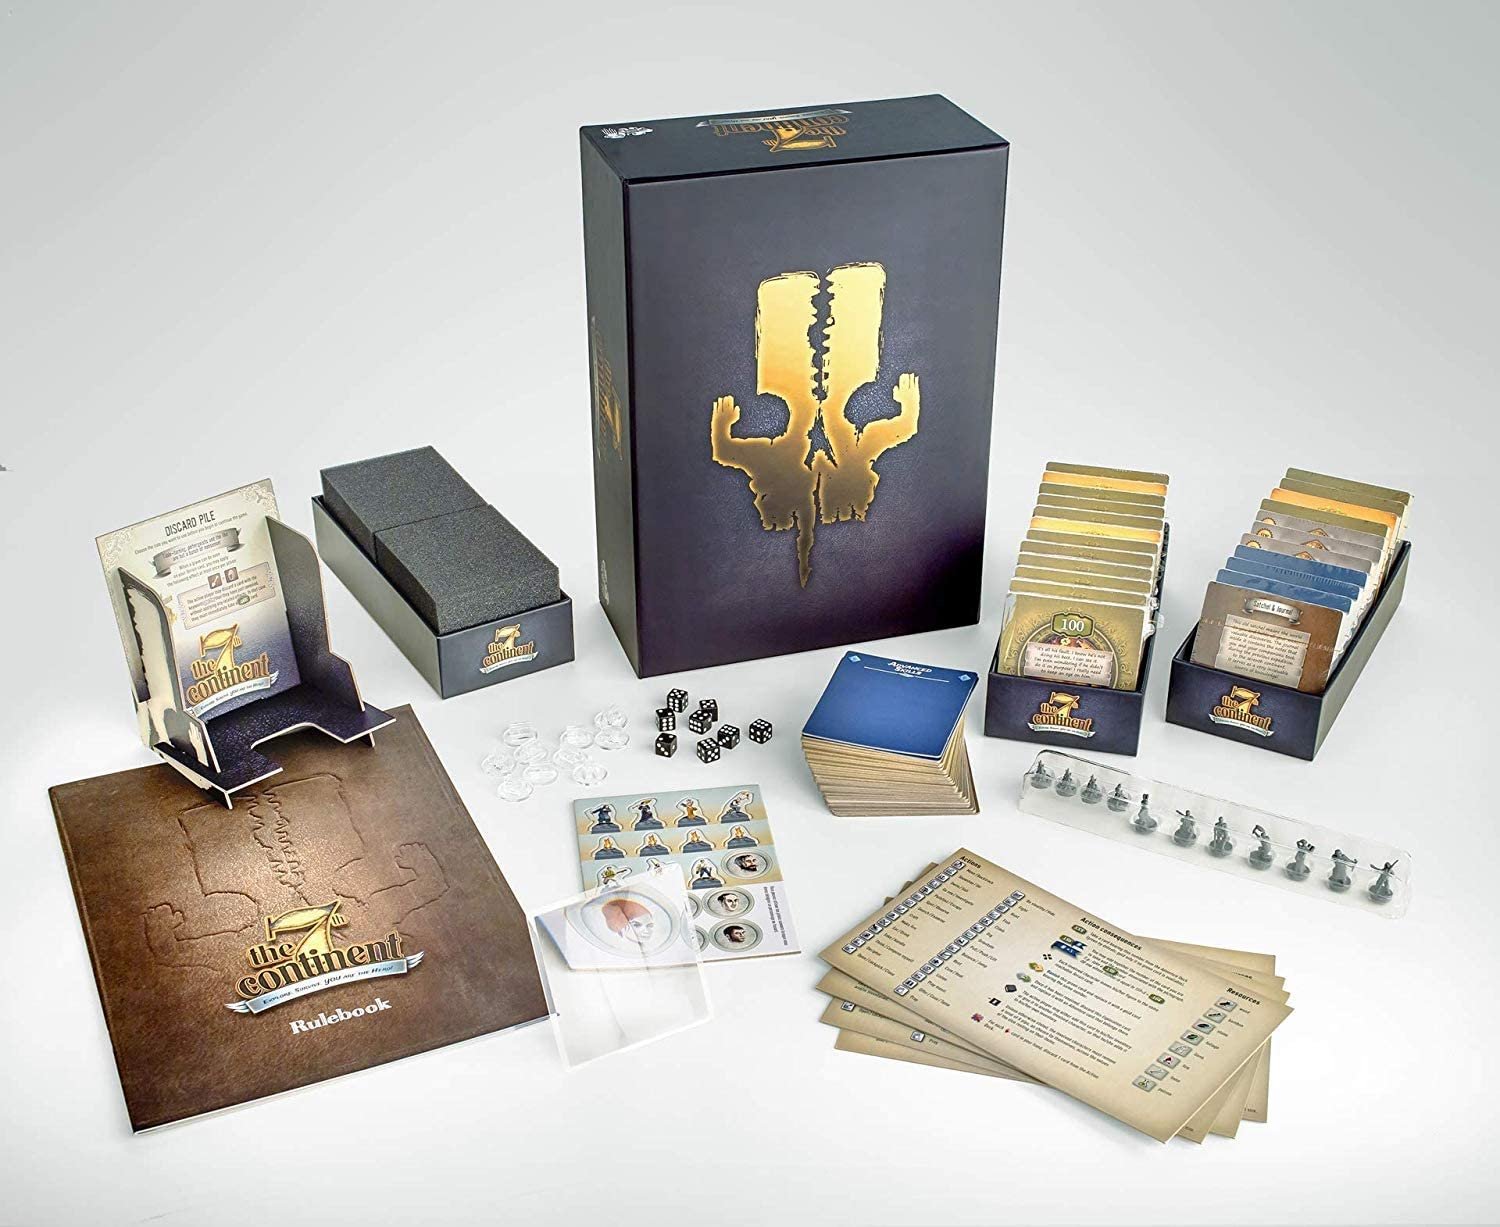 The 7th Continent Game Tabletop Board Mesa Great interest Mall